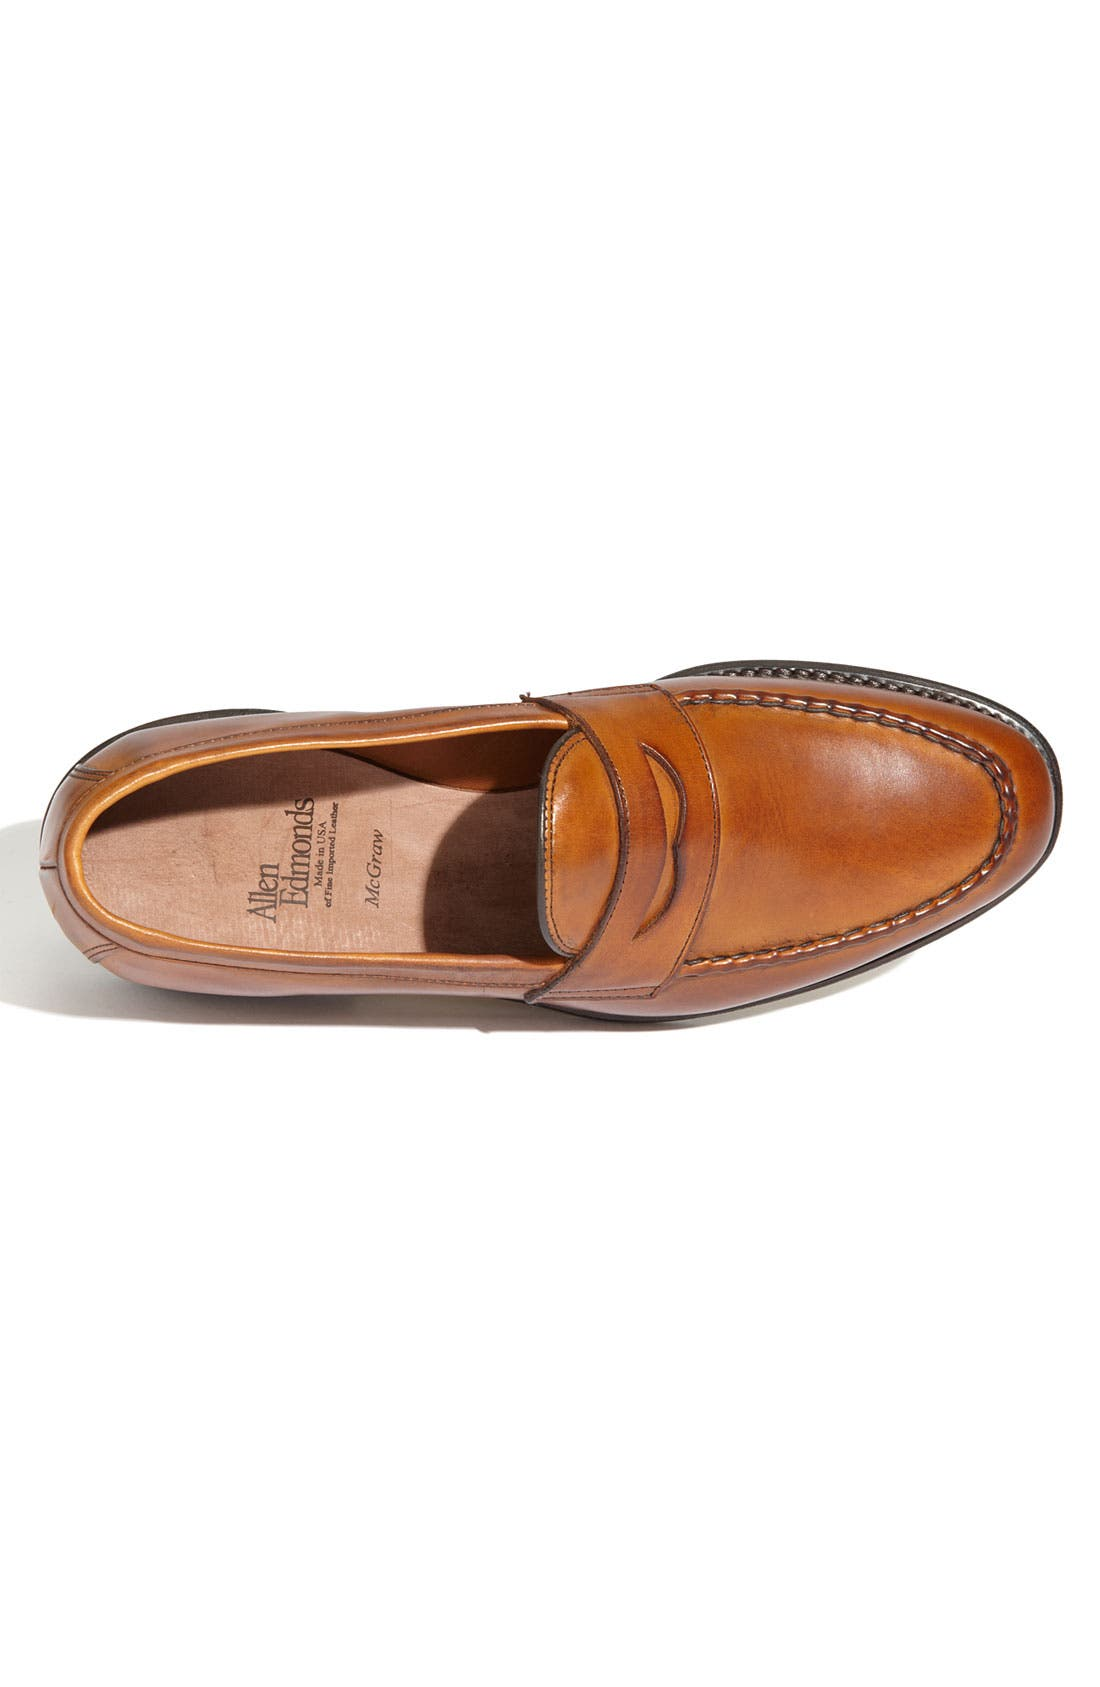 Alternate Image 2  - Allen Edmonds 'McGraw' Penny Loafer (Online Only)